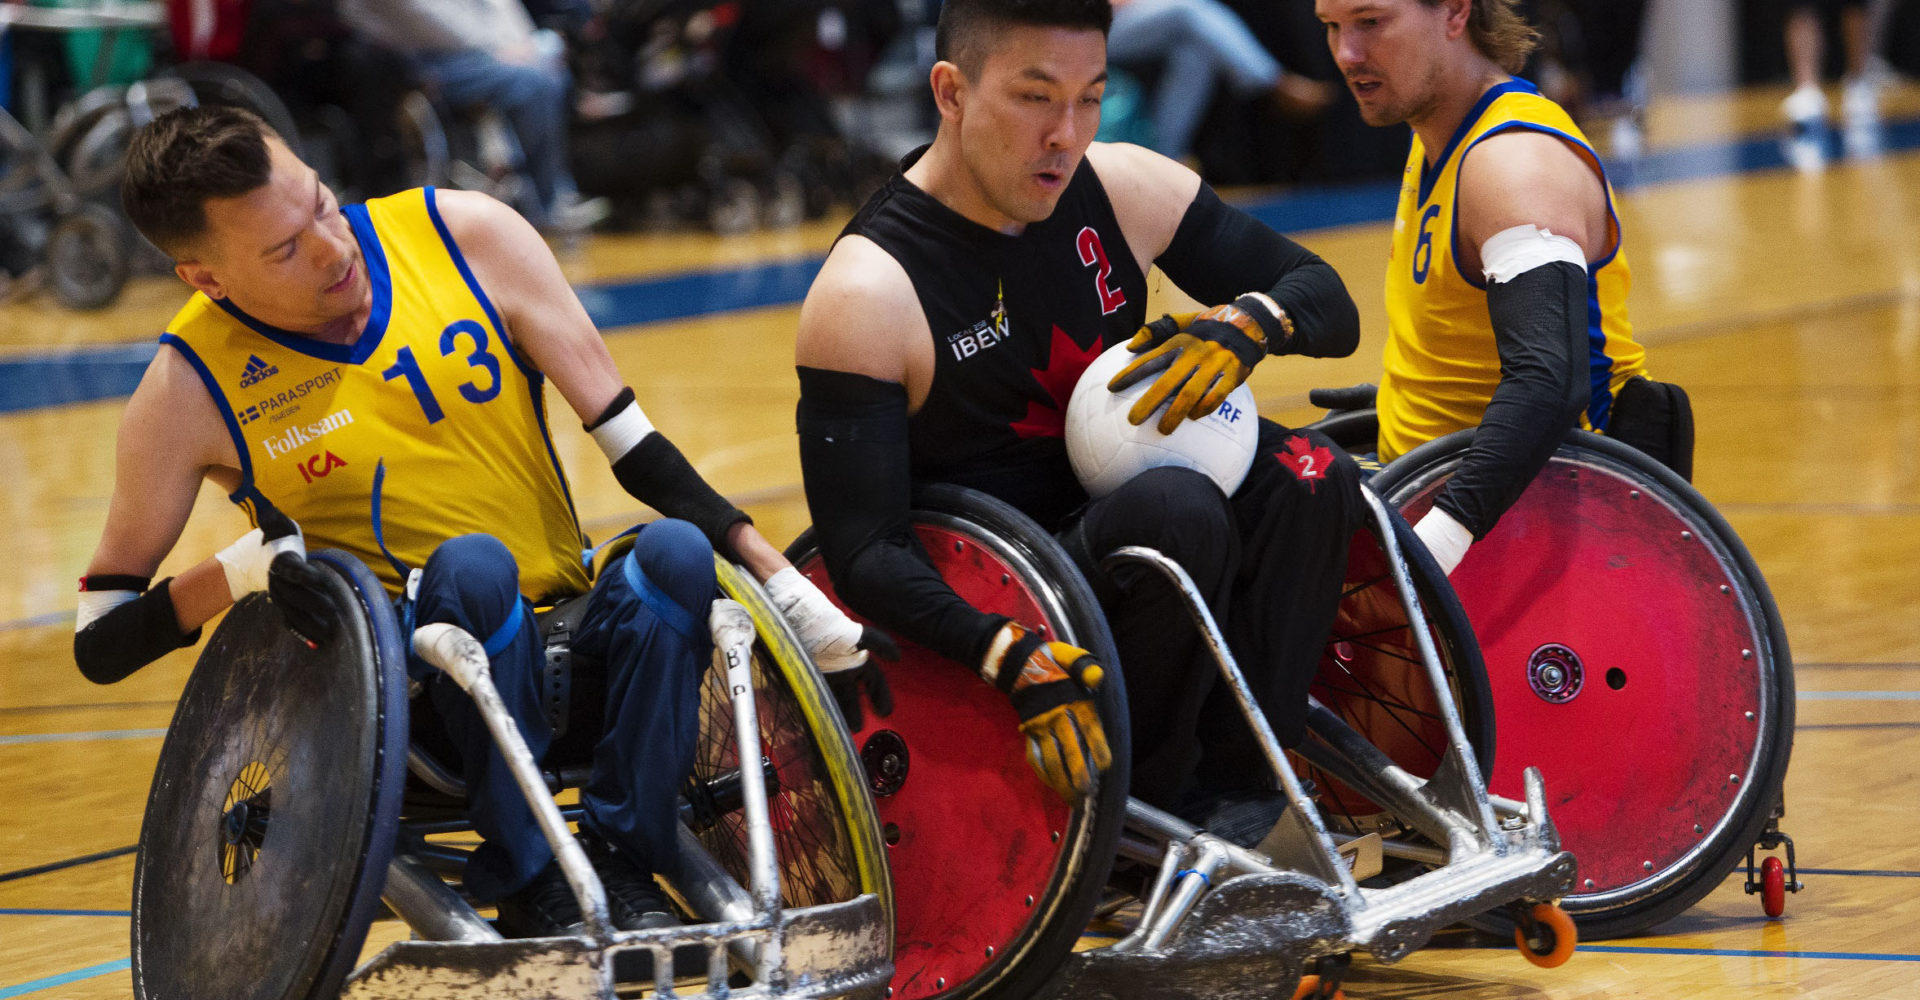 Canadian Paralympic Committee and CBC Sports Partner To Broadcast GIO 2018 IWRF Wheelchair Rugby World Championships